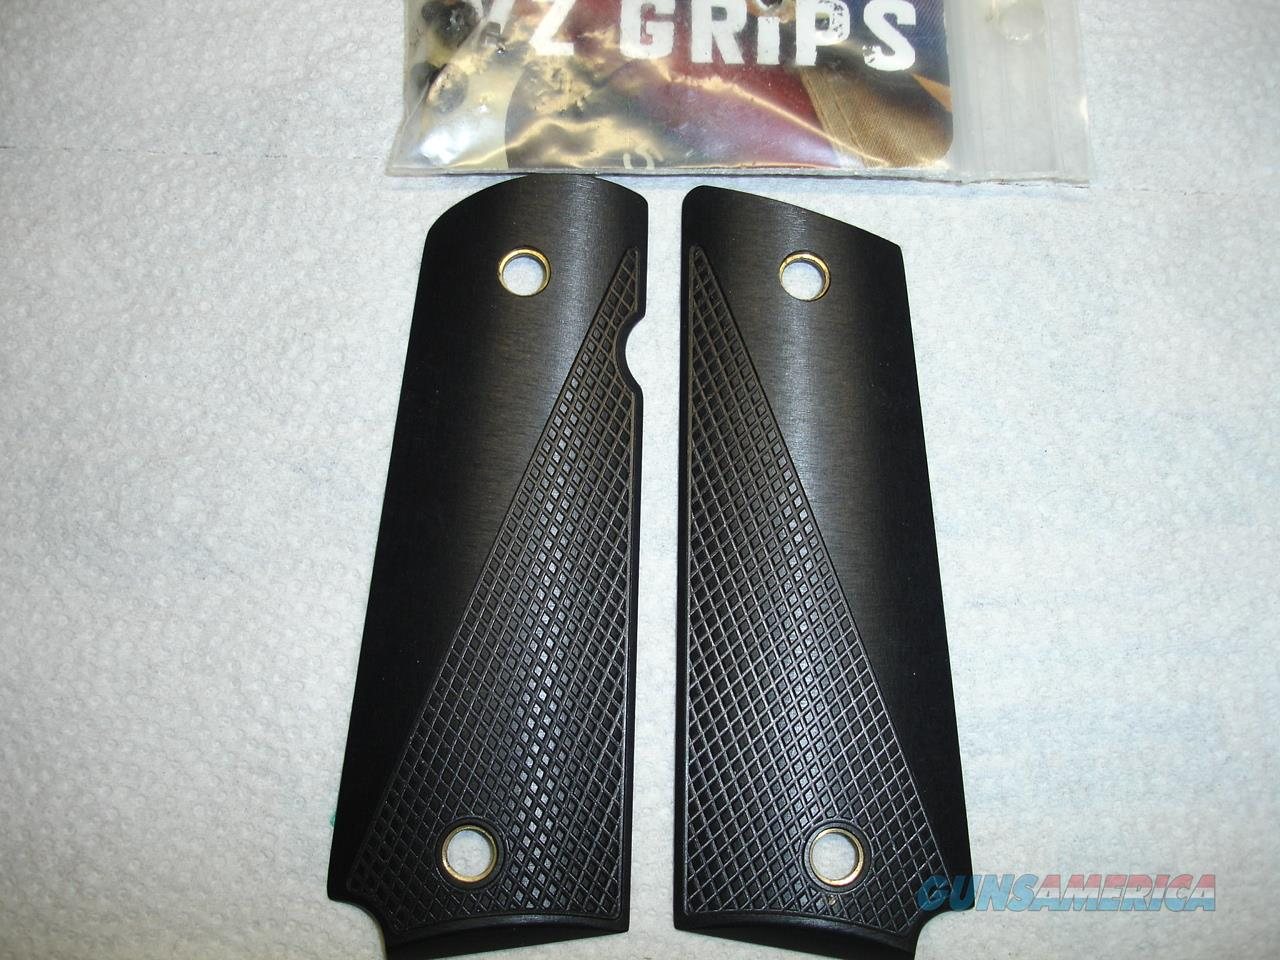 VZ ALUMINUM 1911 GRIPS  Non-Guns > Gunstocks, Grips & Wood